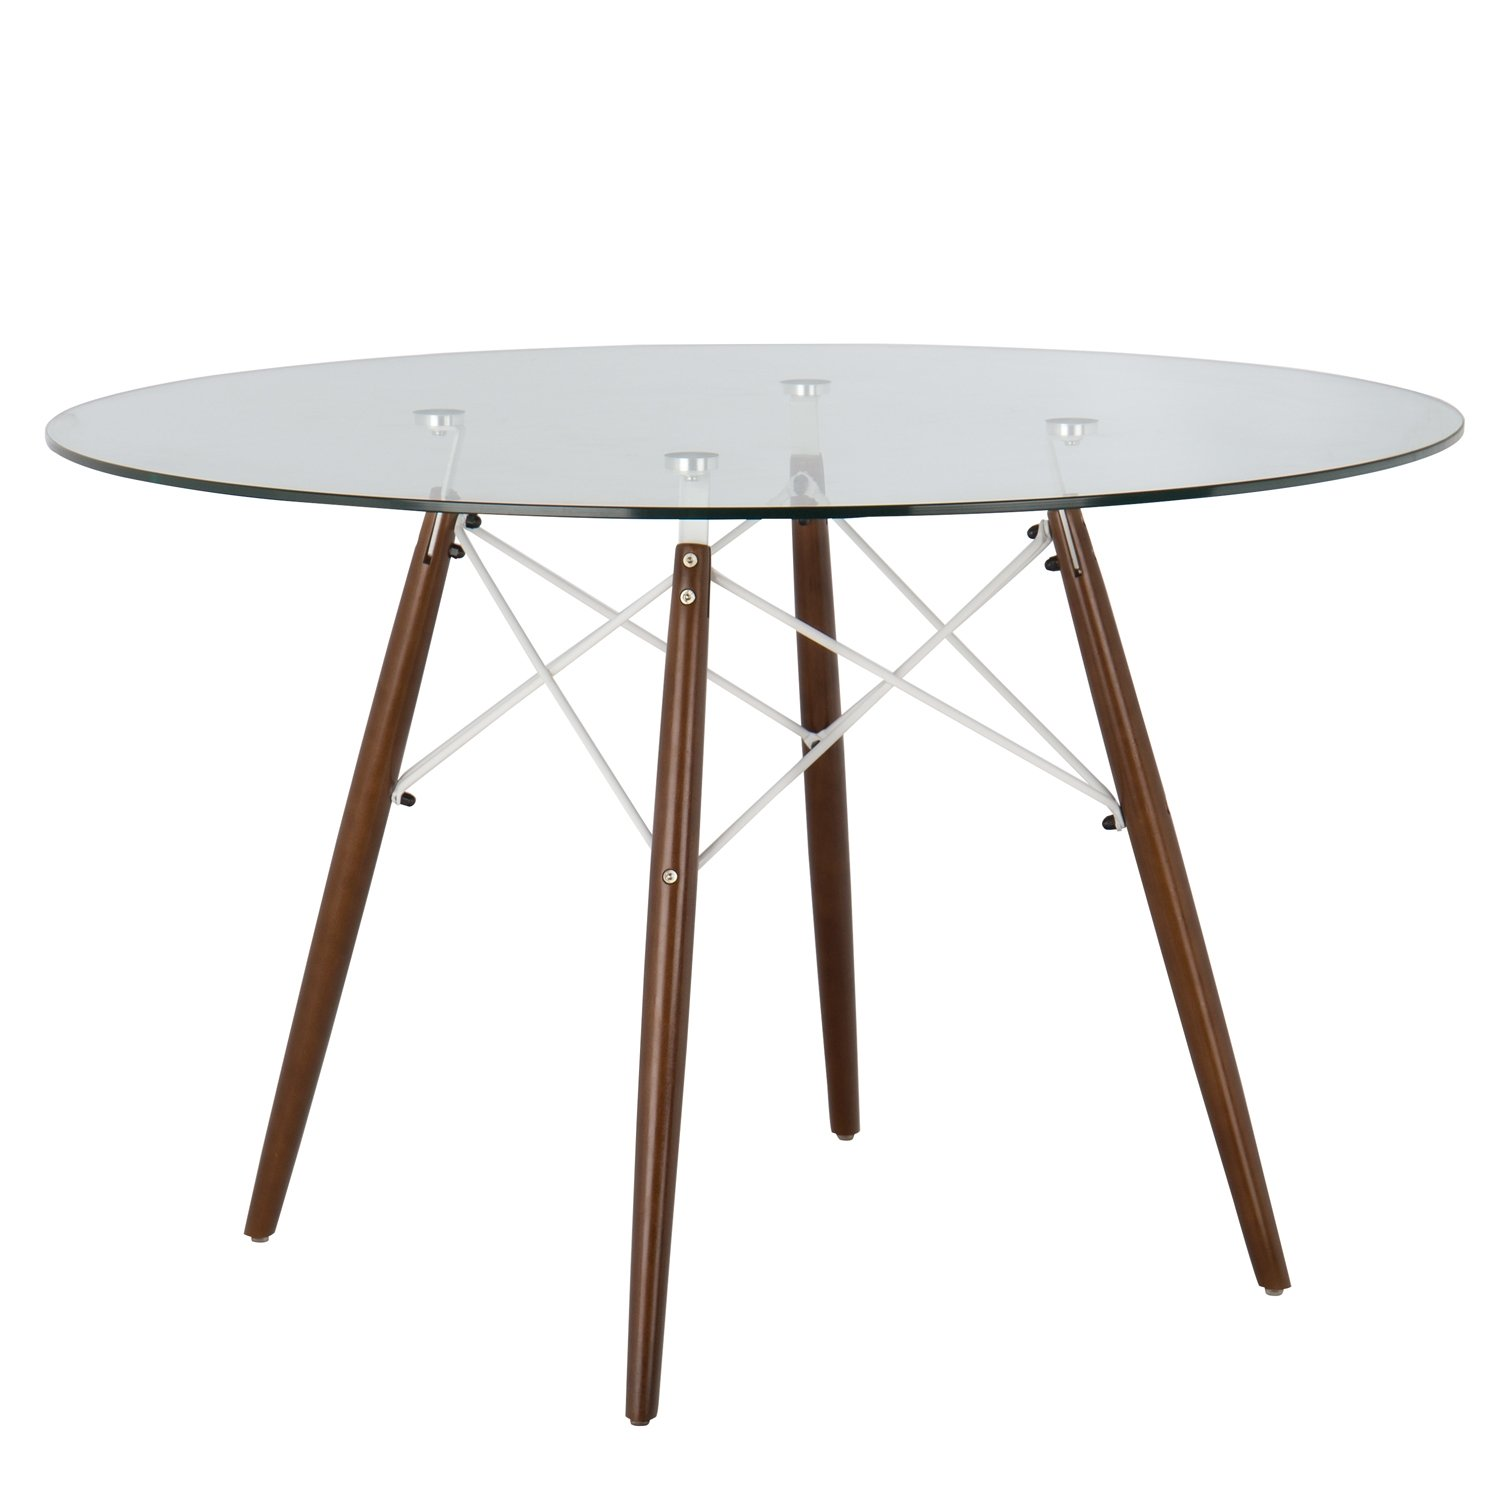 Table Ronde Salon De Jardin Best Of Table Brich Scand ˜120 Sklum Of 40 Best Of Table Ronde Salon De Jardin